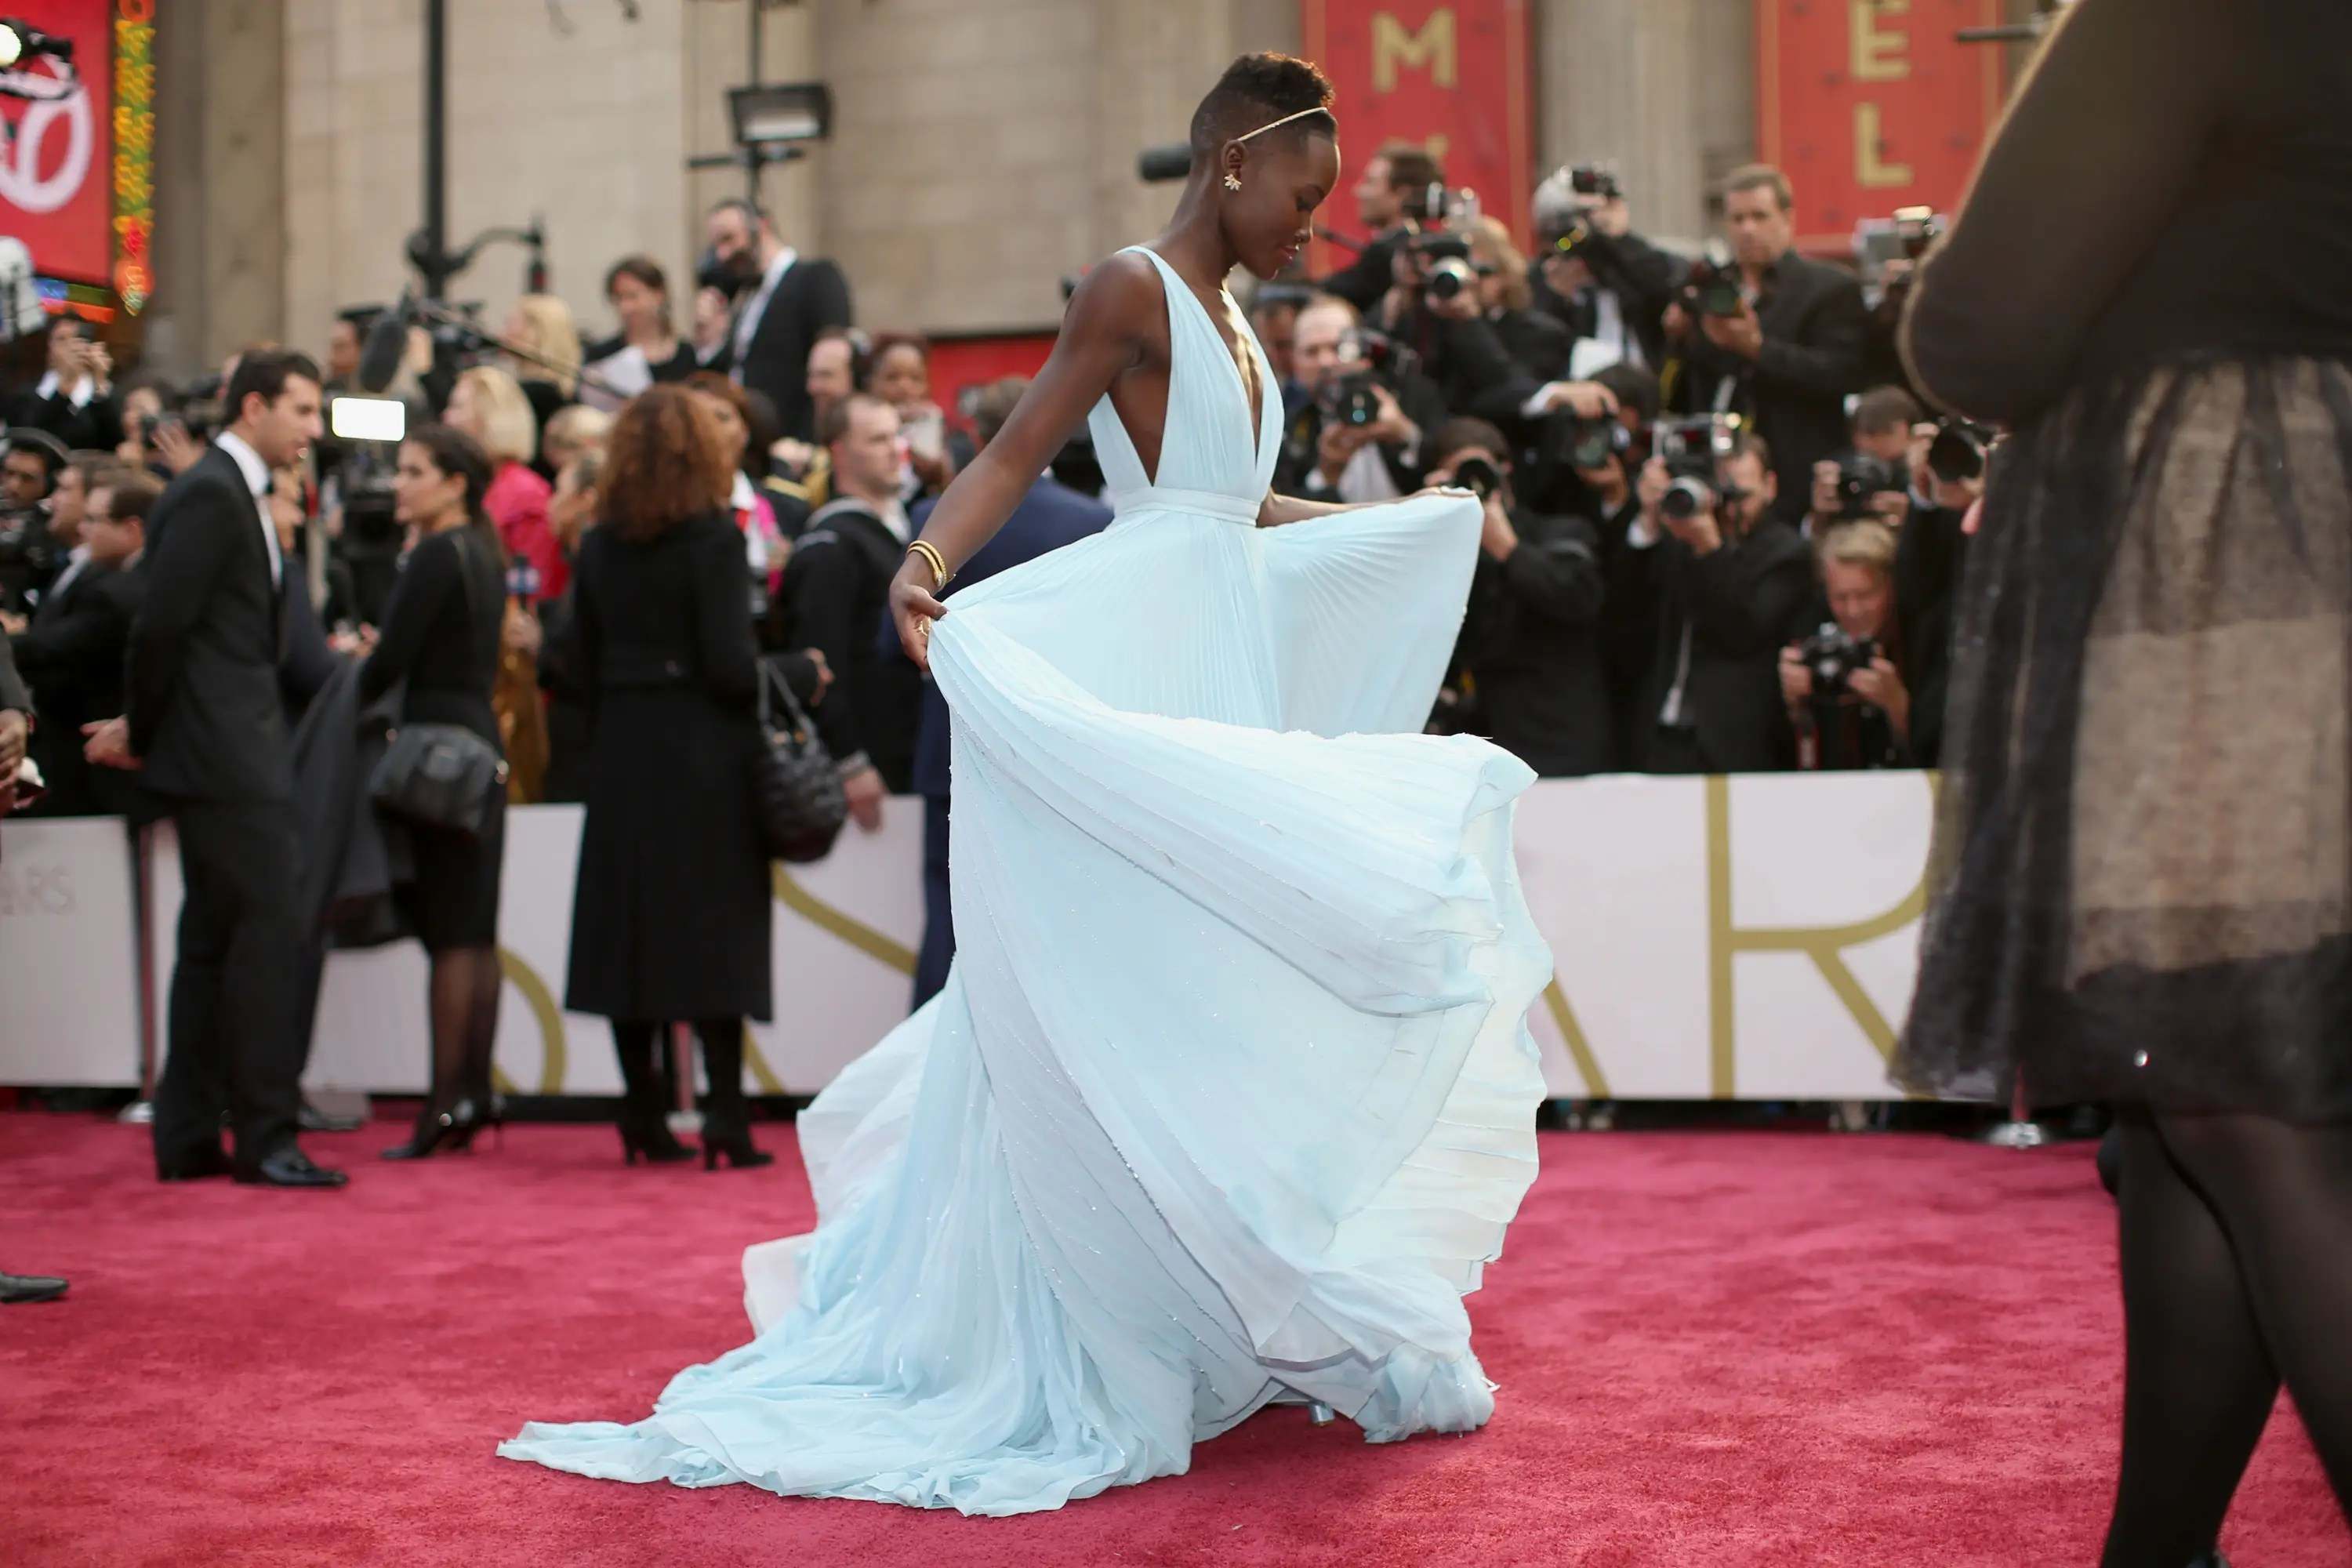 Oscar winner Lupita Nyong'o sashayed her way down the red carpet in her gorgeous Cinderella gown.